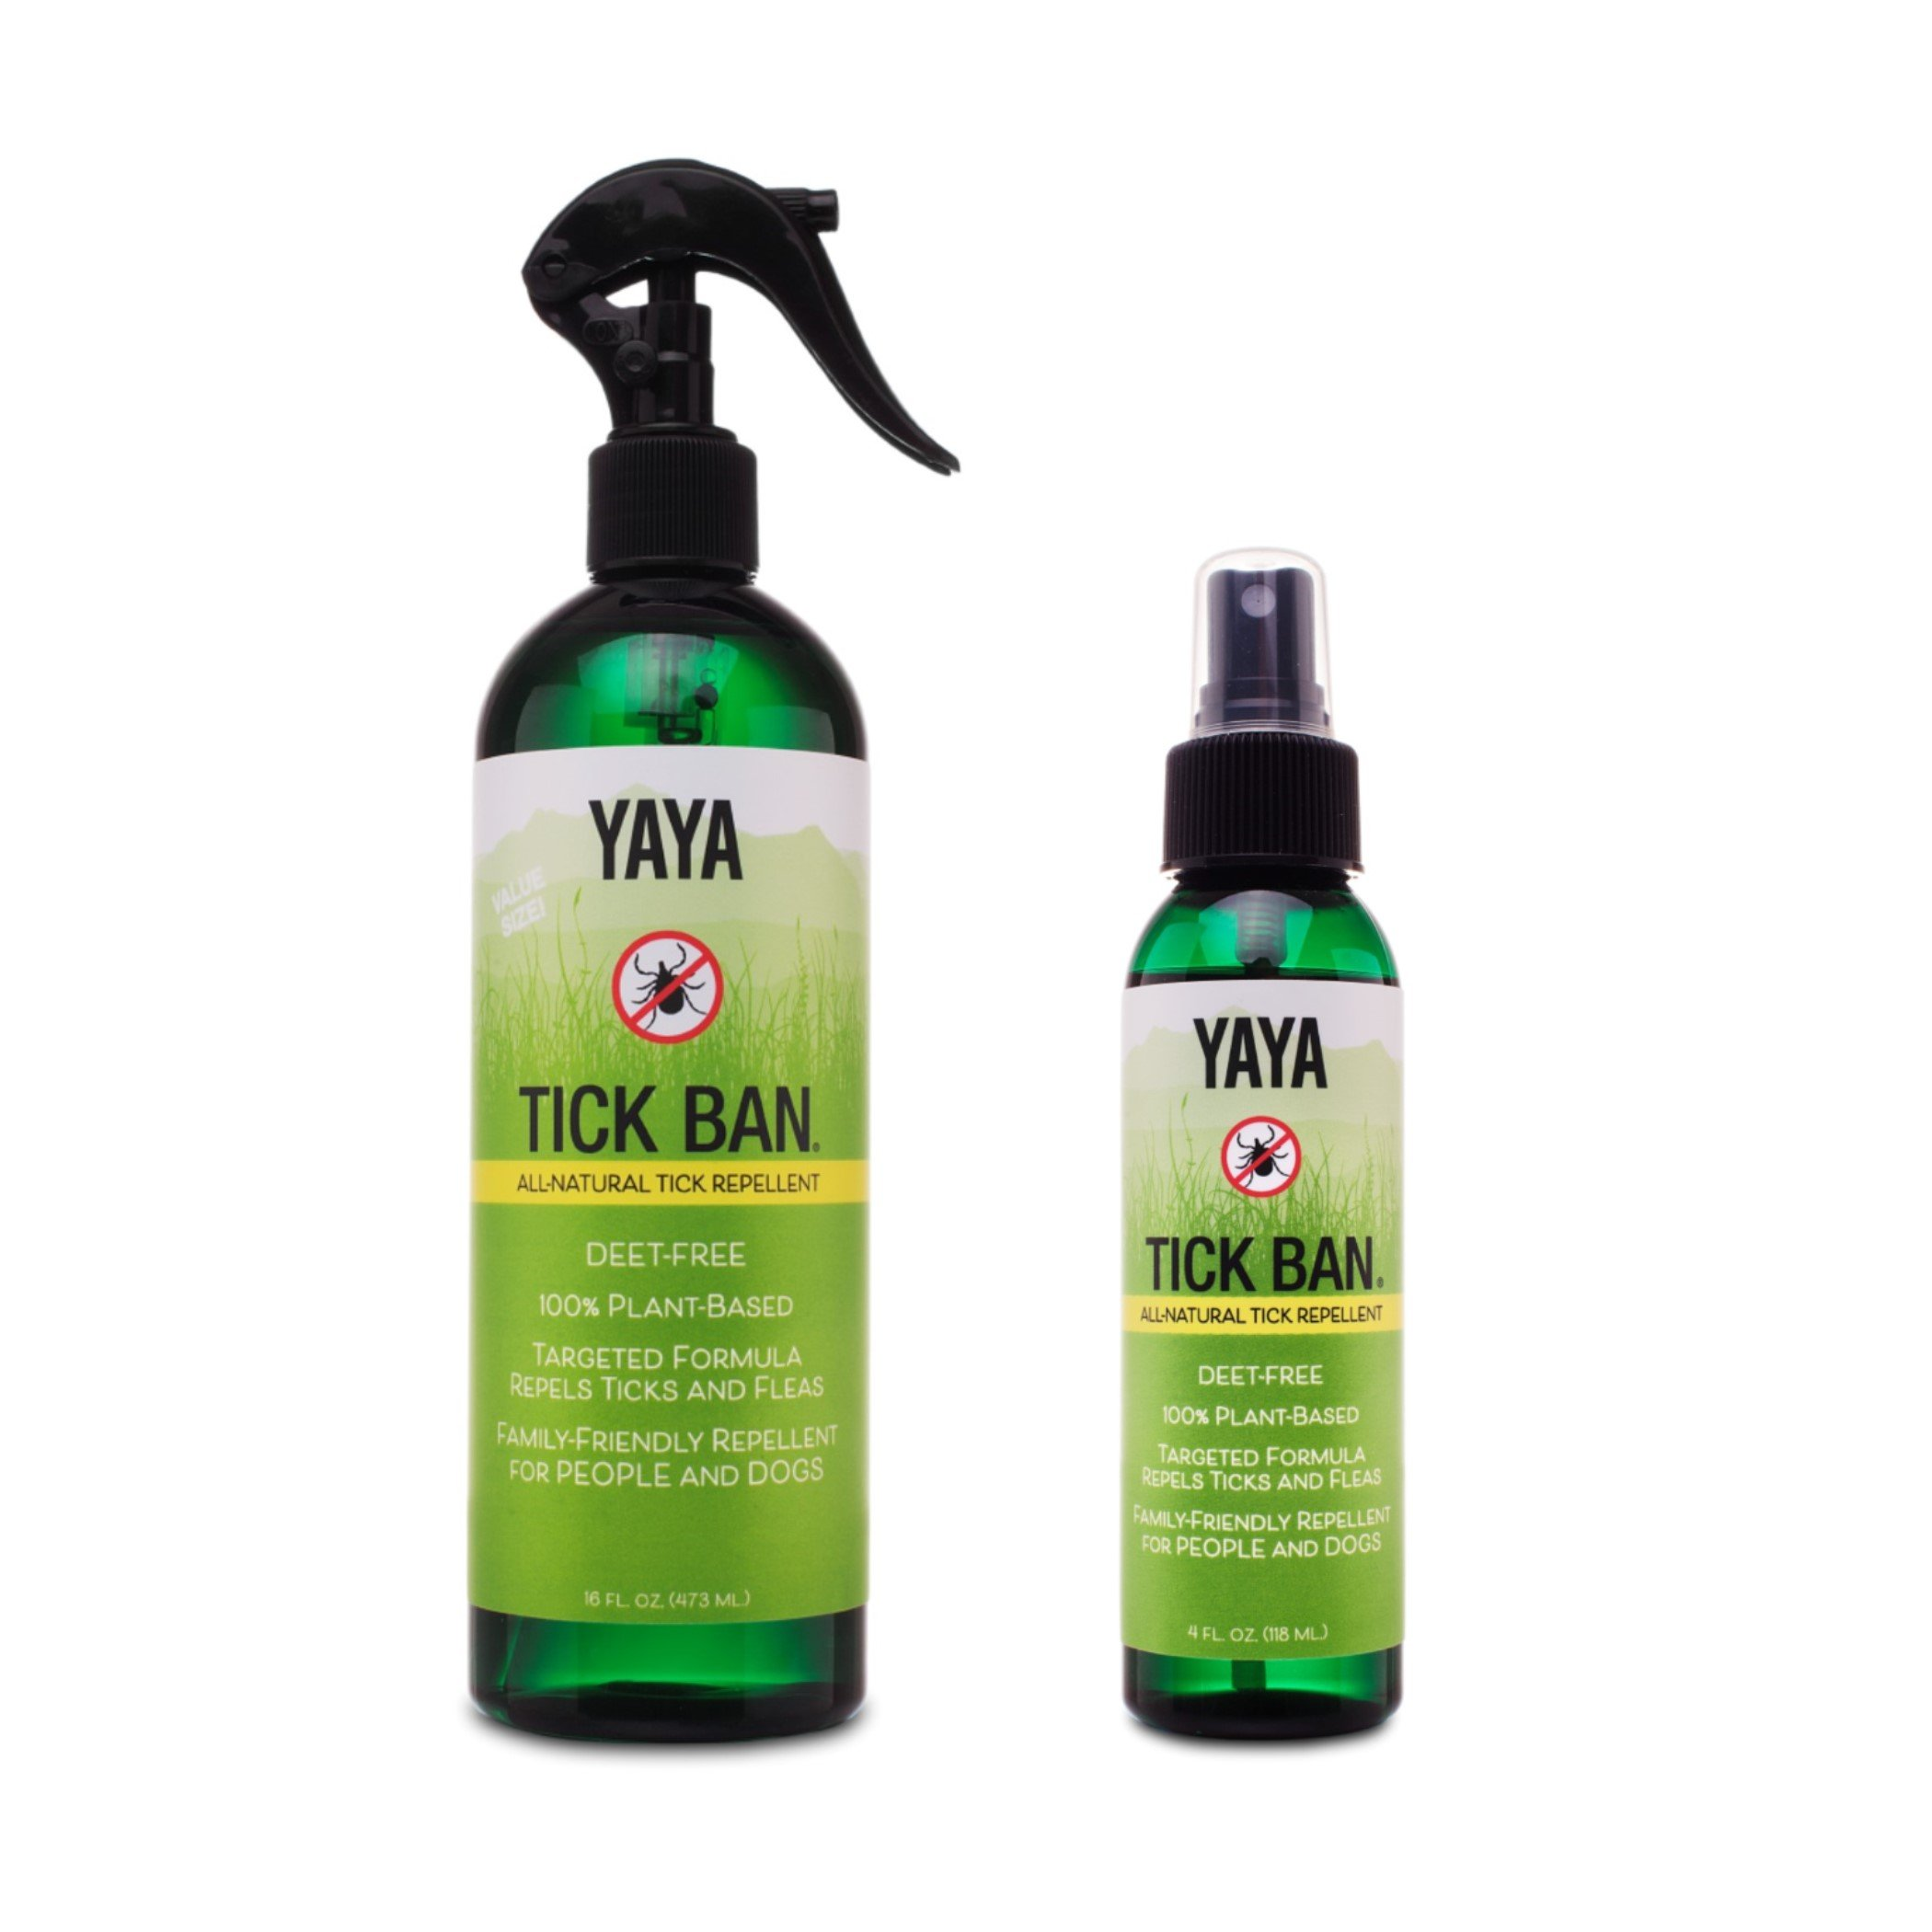 YAYA Organics Tick Ban   Extra Strength Tick Repellent Made with Essential Oils and All Natural, DEET Free Ingredients   Proven Effective, Safe for Adults, Kids and Dogs   Mixed Pack (4oz/16oz)